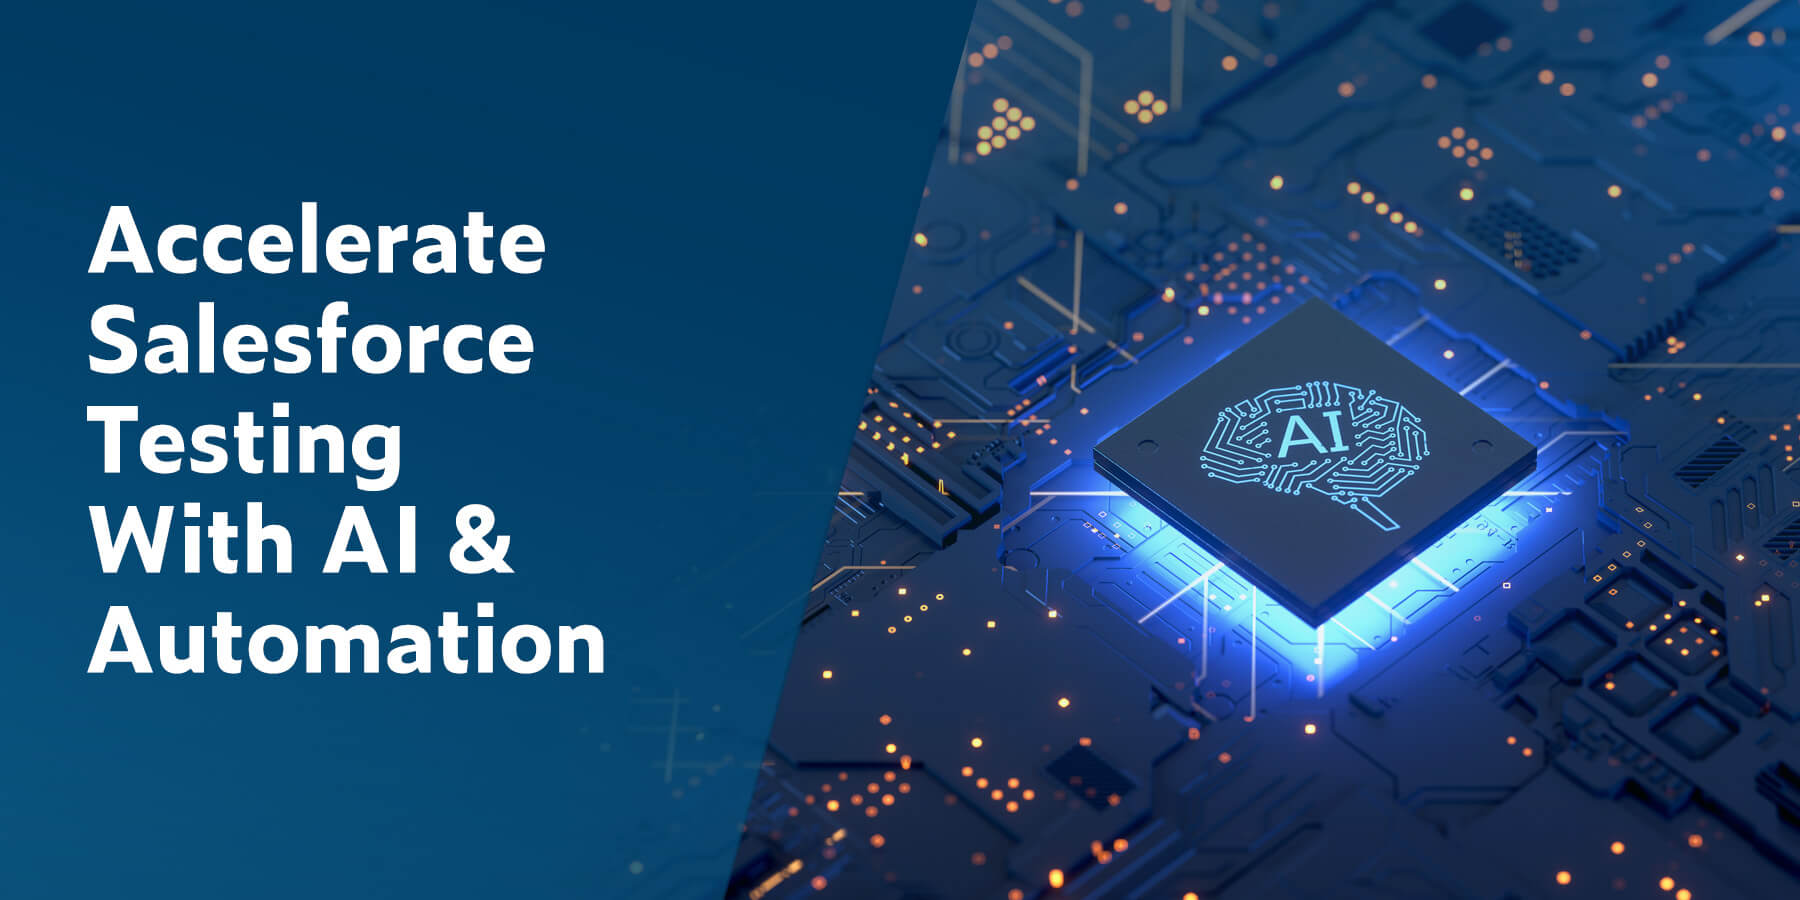 Accelerate Salesforce Testing With AI & Automation